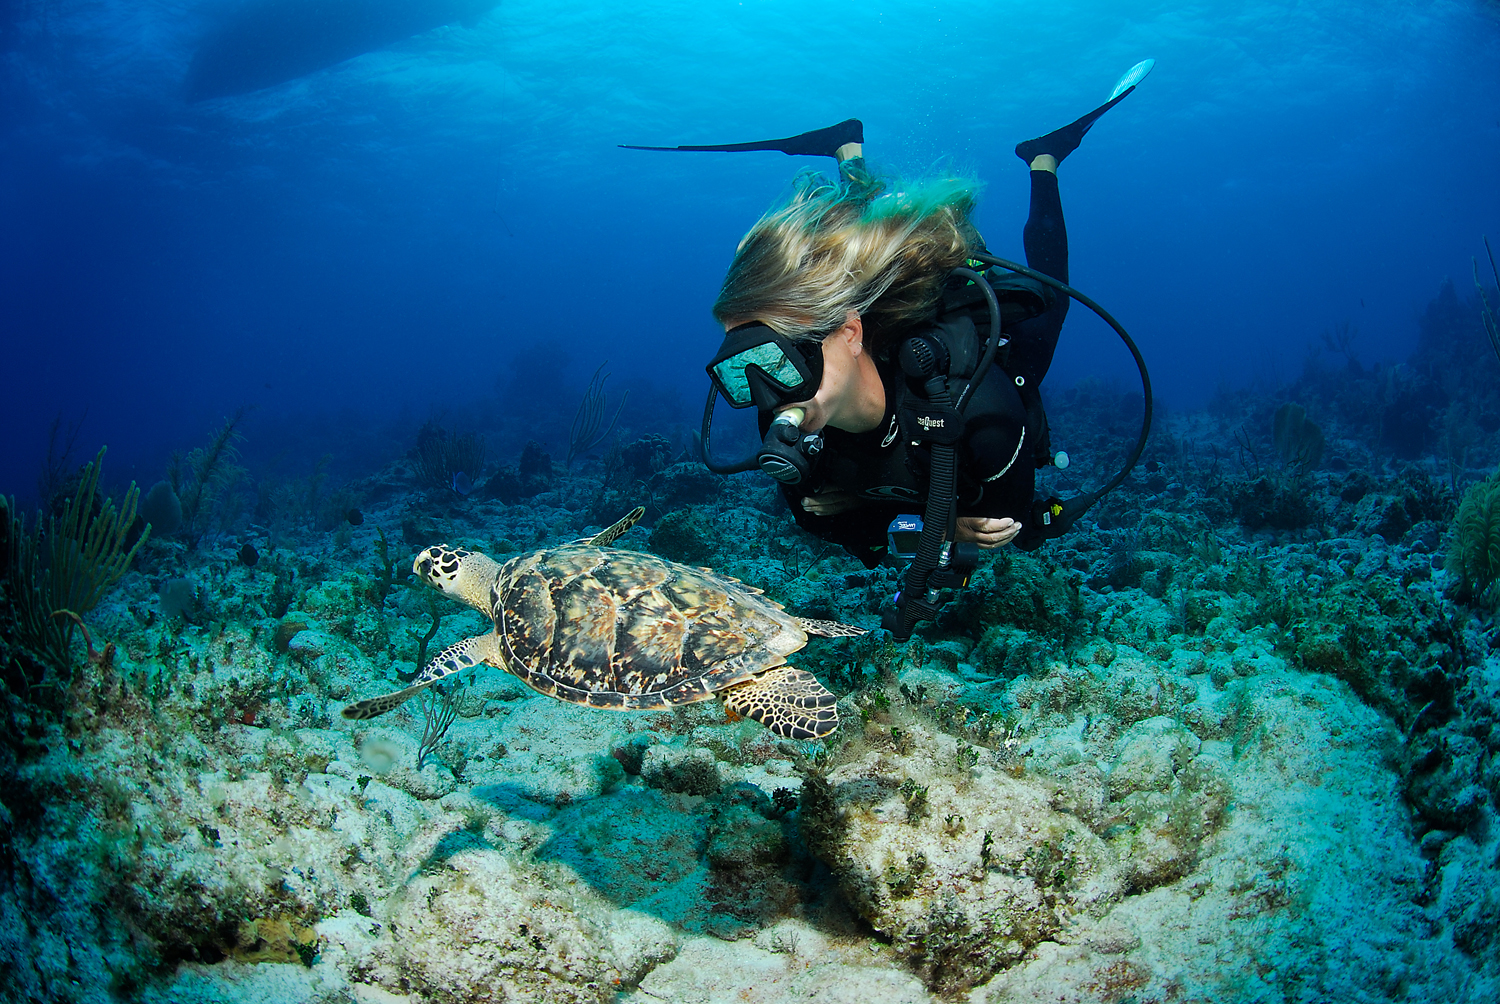 Cayman Brac: The Best Shore Diving In The Caribbean